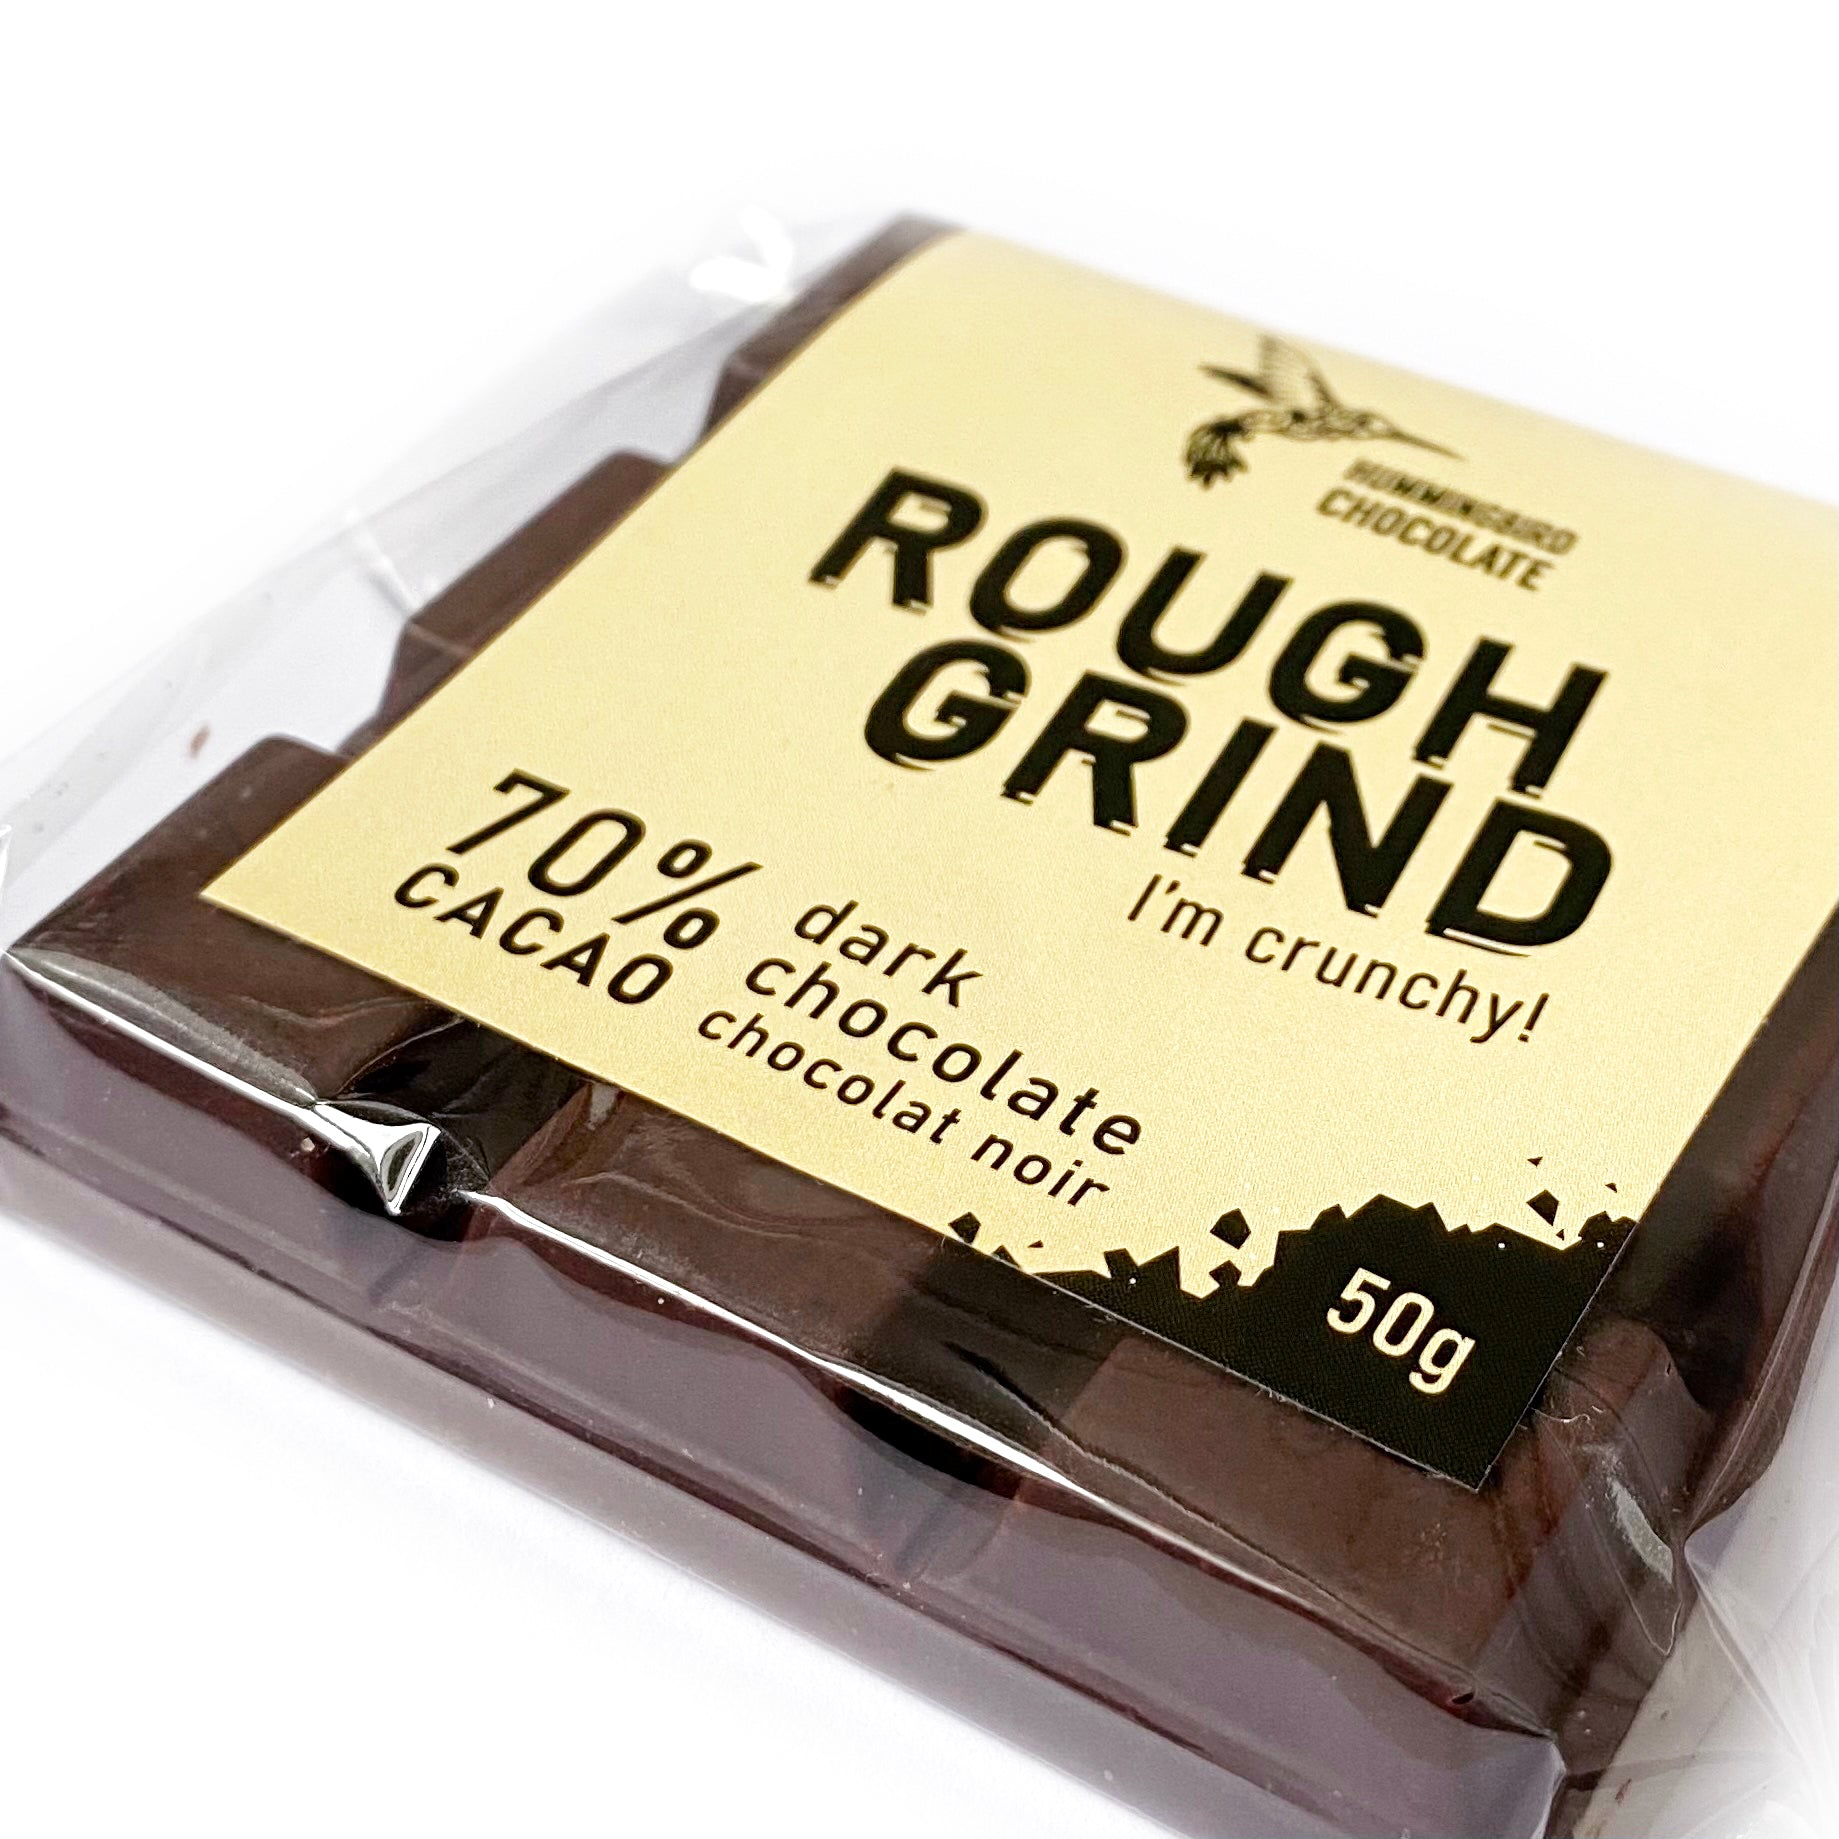 Hummingbird Chocolate Rough Grind chocolate bar, up close and personal